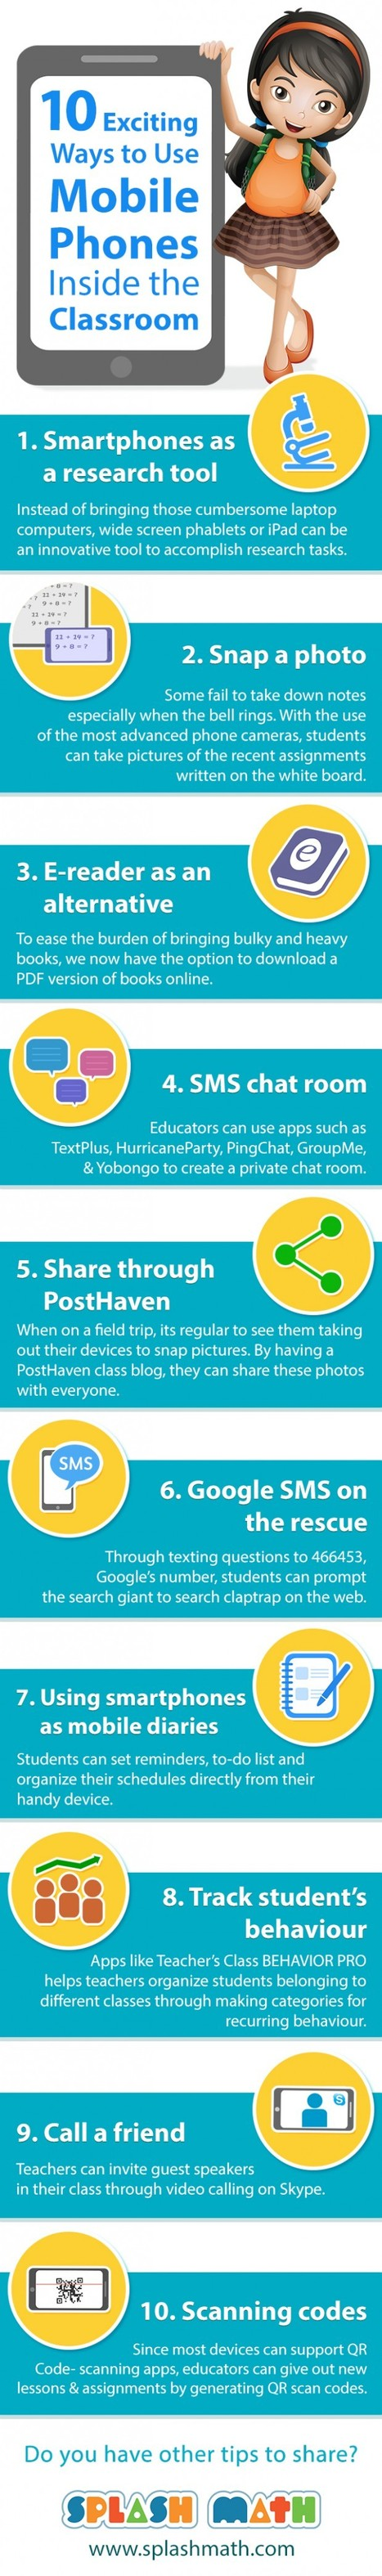 10 Exciting Ways to Use Mobile Phones In the Classroom Infographic | e-Learning Infographics | mLearning - Learning on the Go | Scoop.it